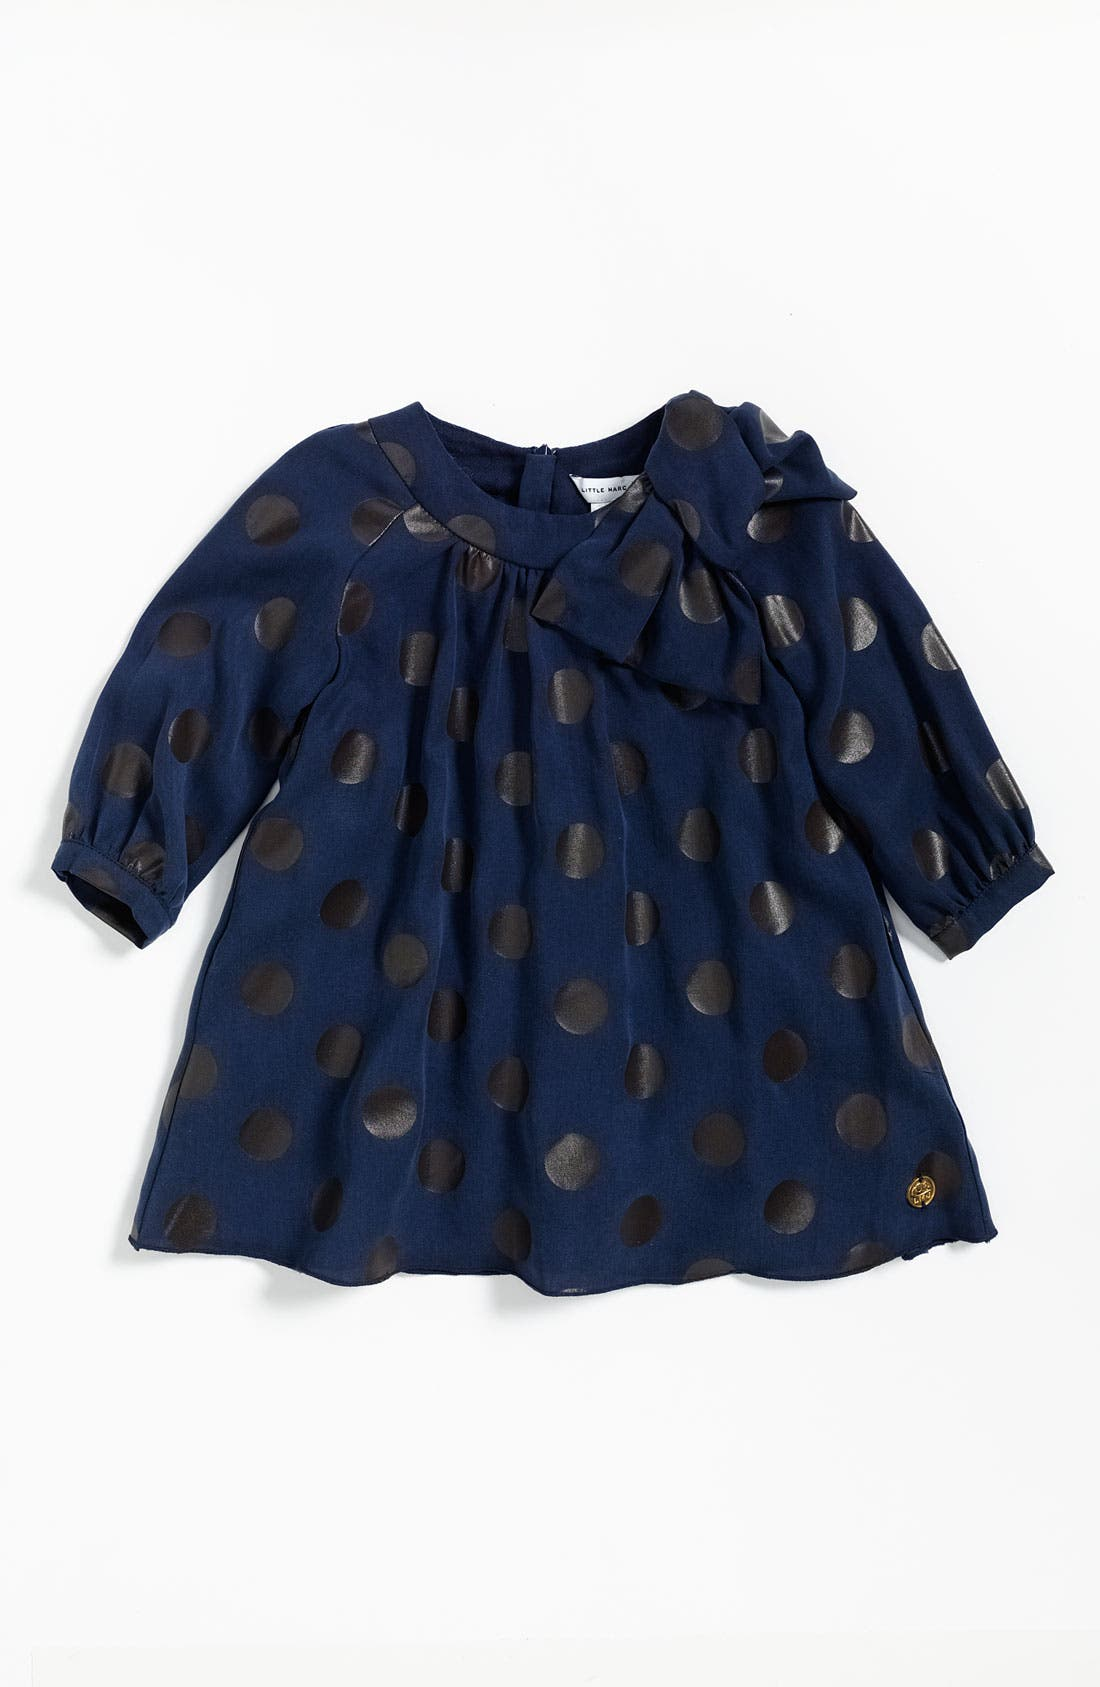 Alternate Image 1 Selected - LITTLE MARC JACOBS Dotted Dress (Toddler)